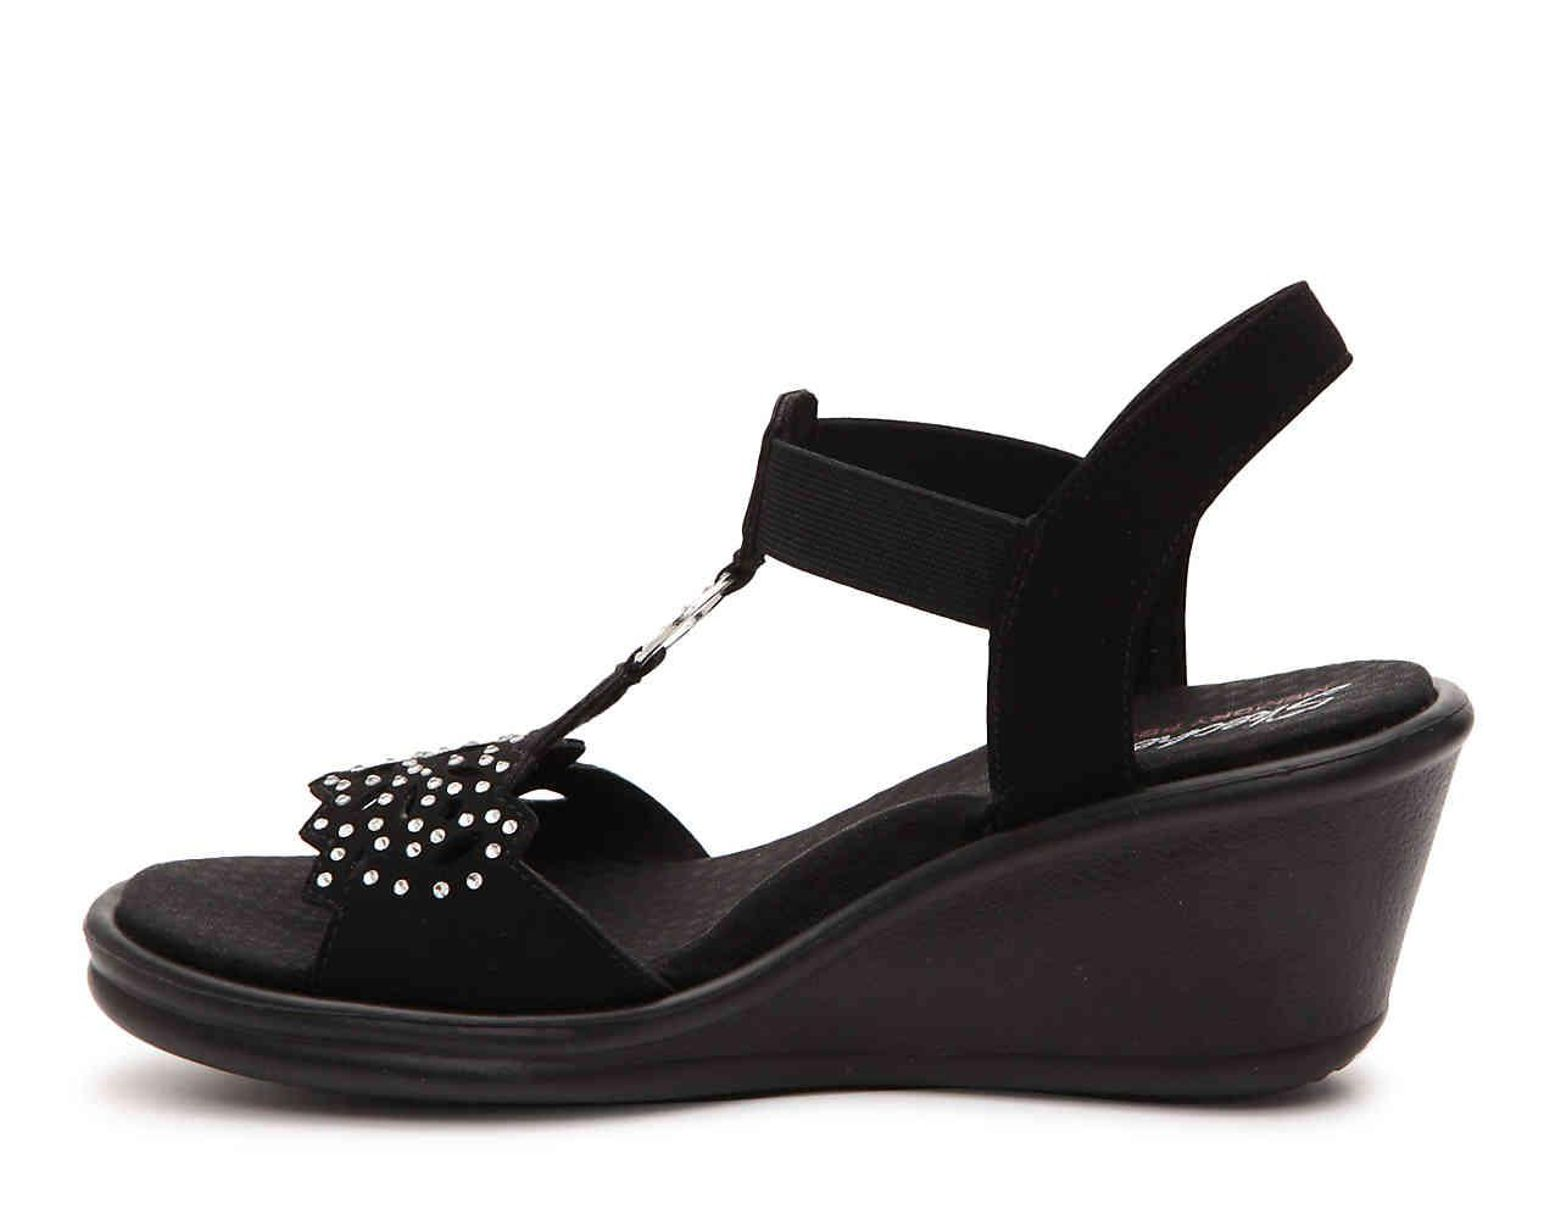 Women's Black Cali Rumblers Queen B Wedge Sandal